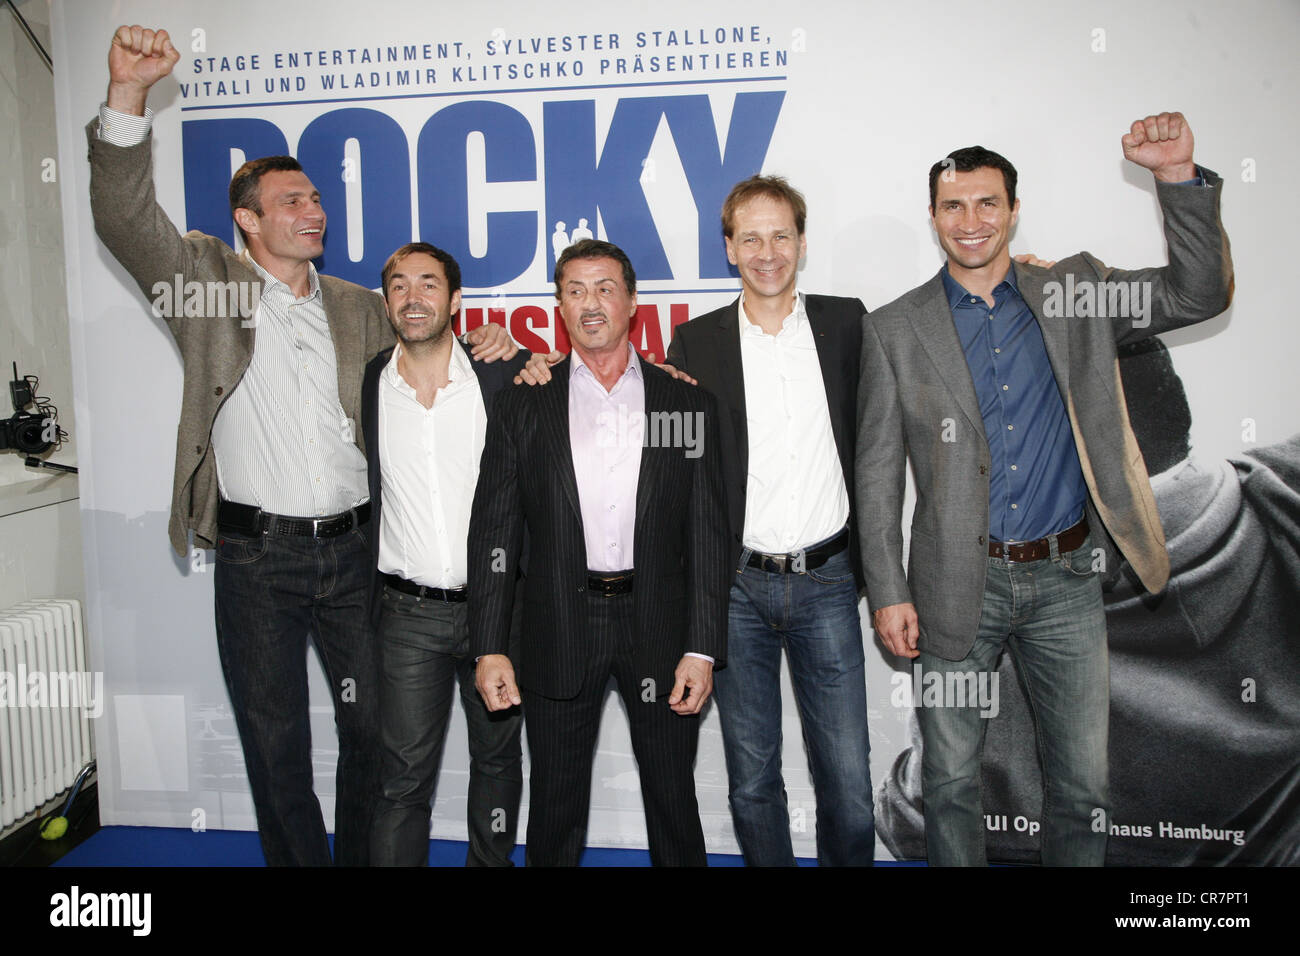 Stallone, Sylvester, * 6.7.1946, American actor, half length, group picture with Vitali and Wladimir Klitschko, - Stock Image